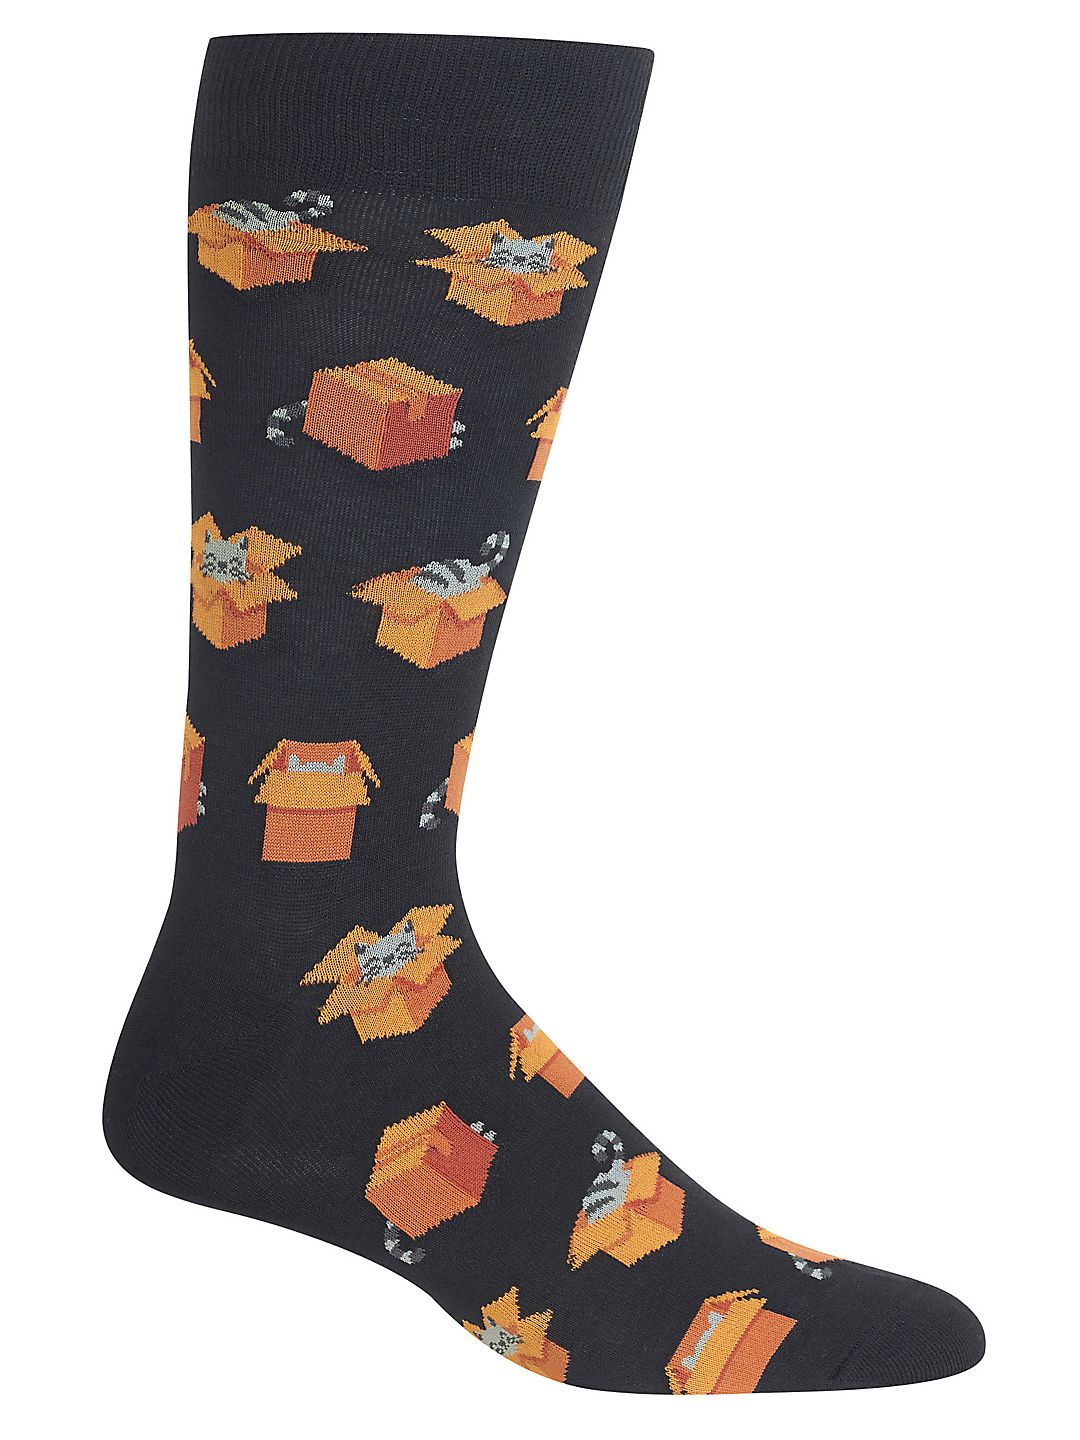 Cats in Boxes Crew Socks